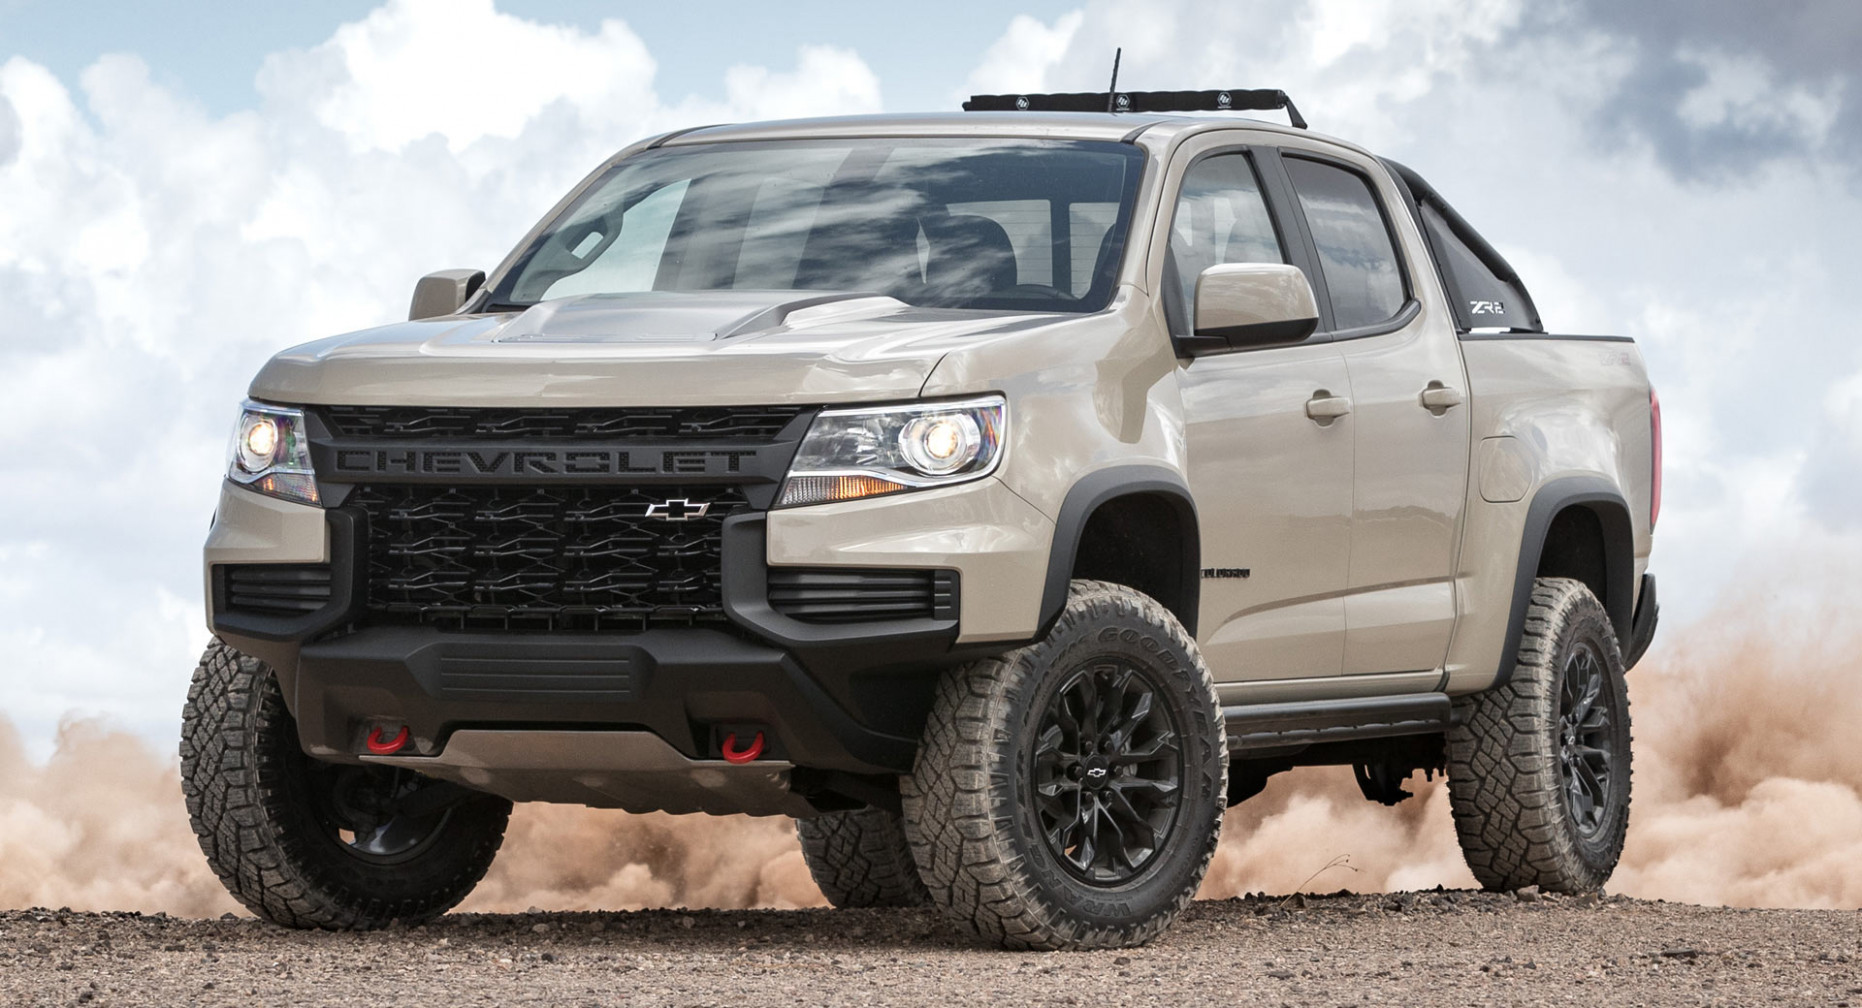 New Model and Performance 2022 Chevrolet Colorado